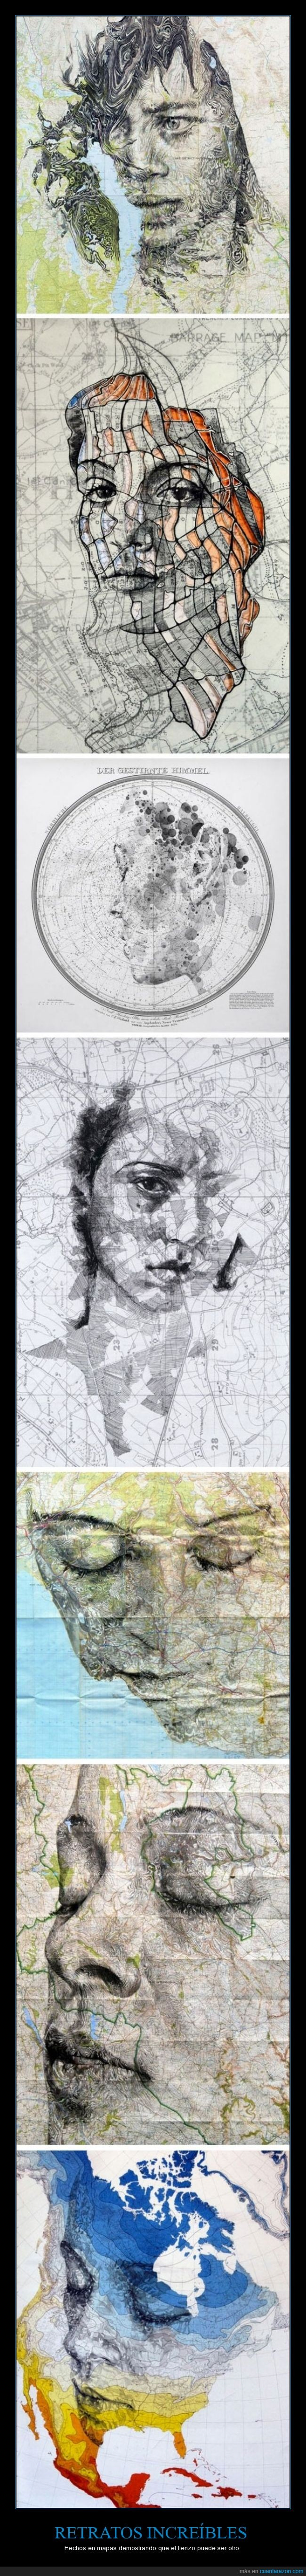 arte,dibujar,Ed Fairburn,mapas,retratos